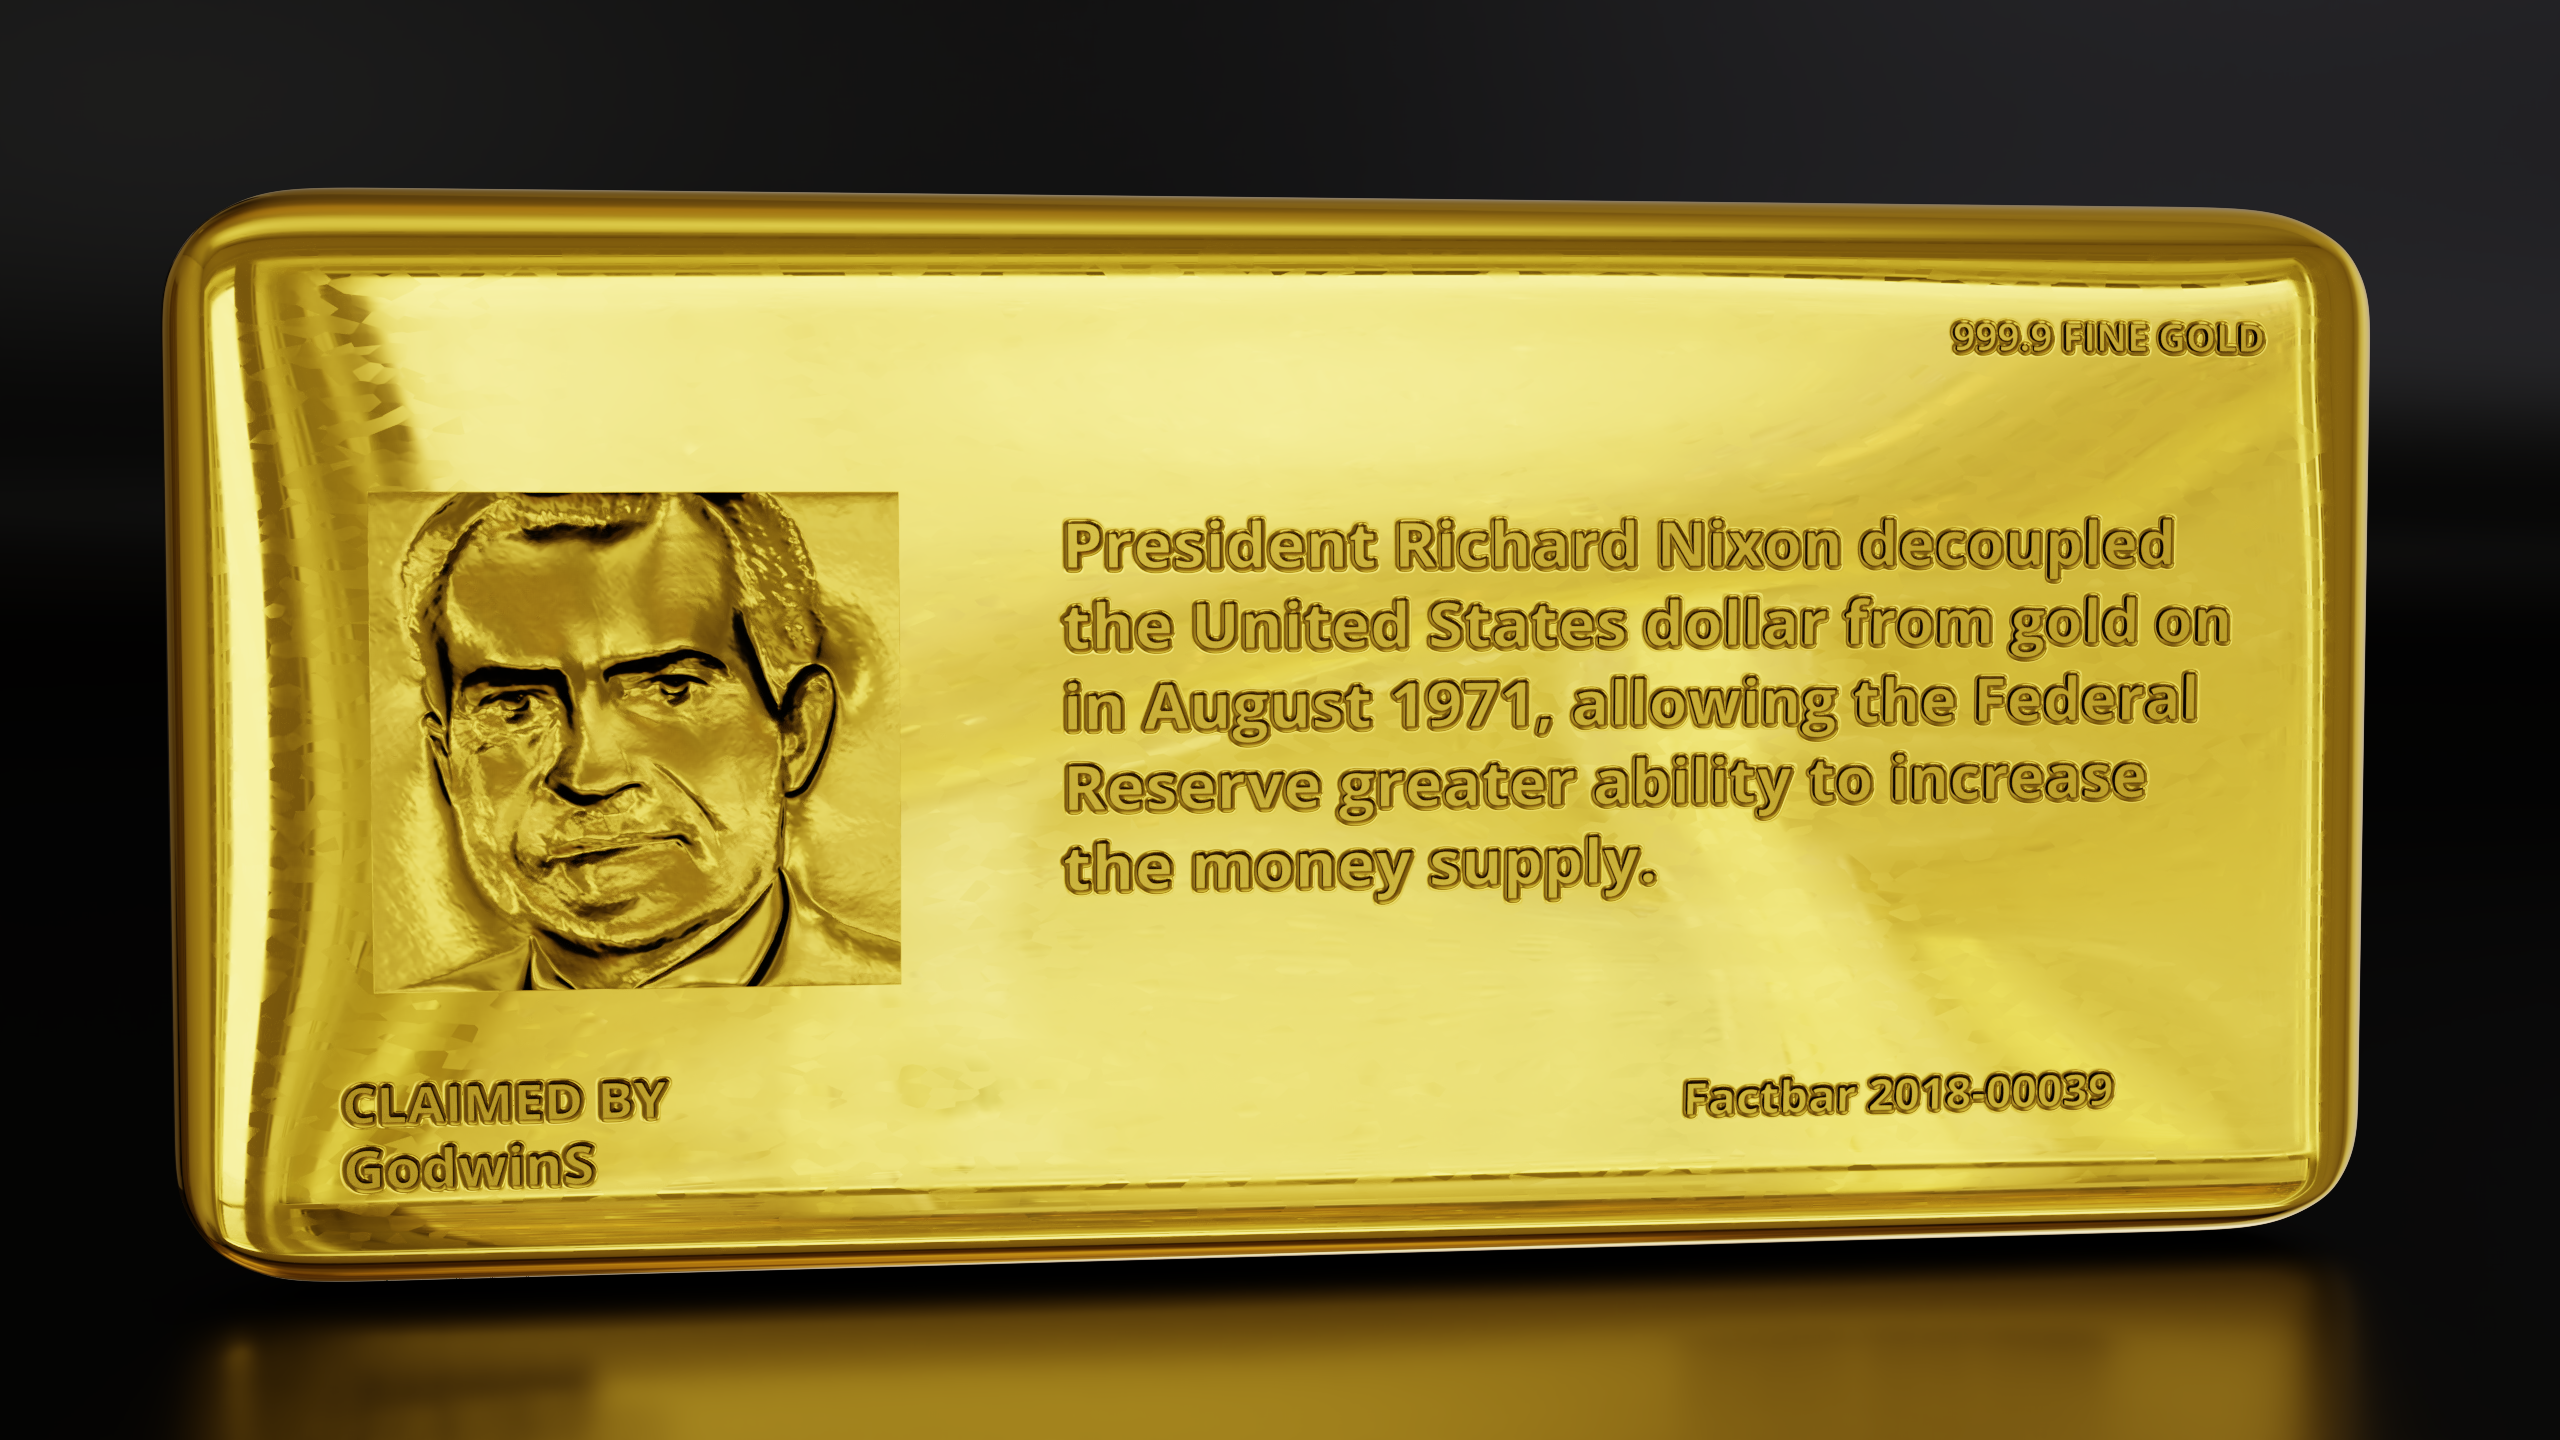 President Richard Nixon decoupled the United States dollar from gold on in August 1971, allowing the Federal Reserve greater ability to increase the money supply. Factbar 39 minted June 10, 2018 11:04am | 10 claims claimed by GodwinS 1.3301 ETH ...